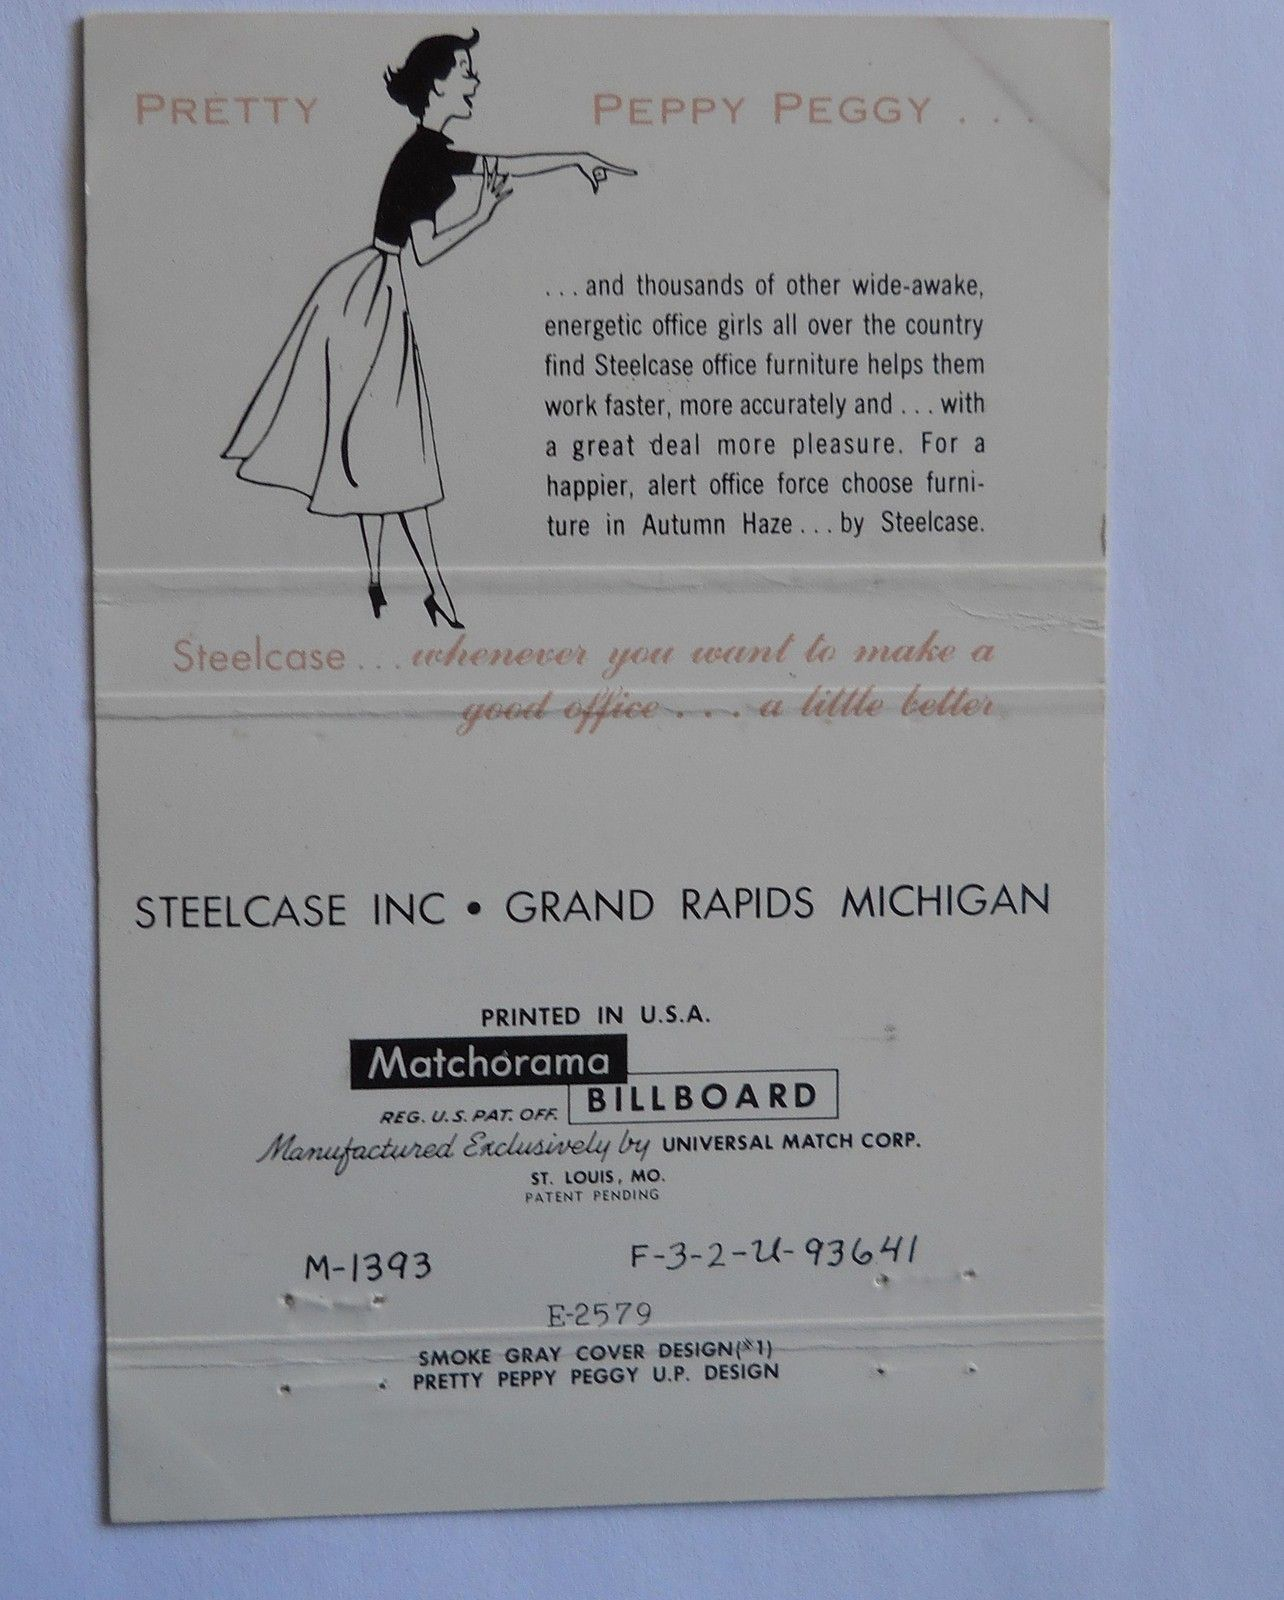 Steelcase Advertising Inside A Matchbook Cover